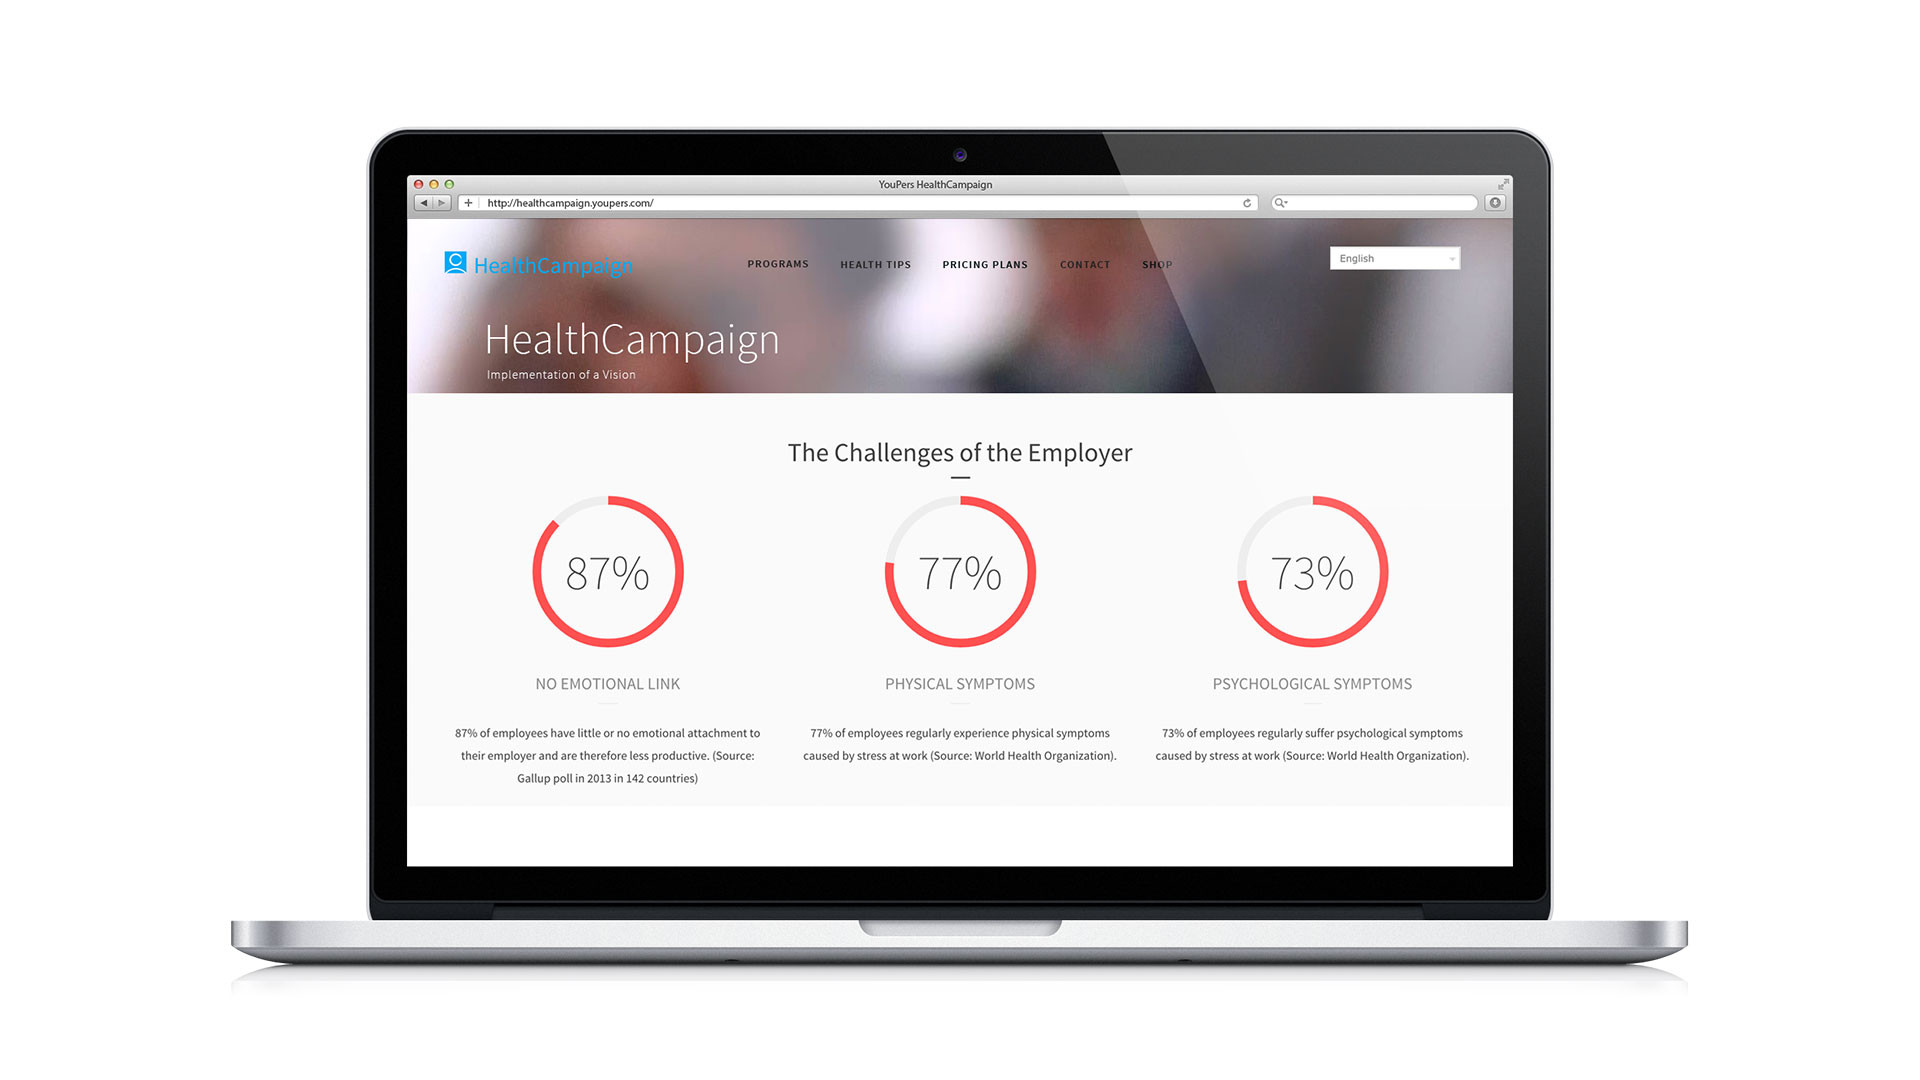 HealthCampaign website